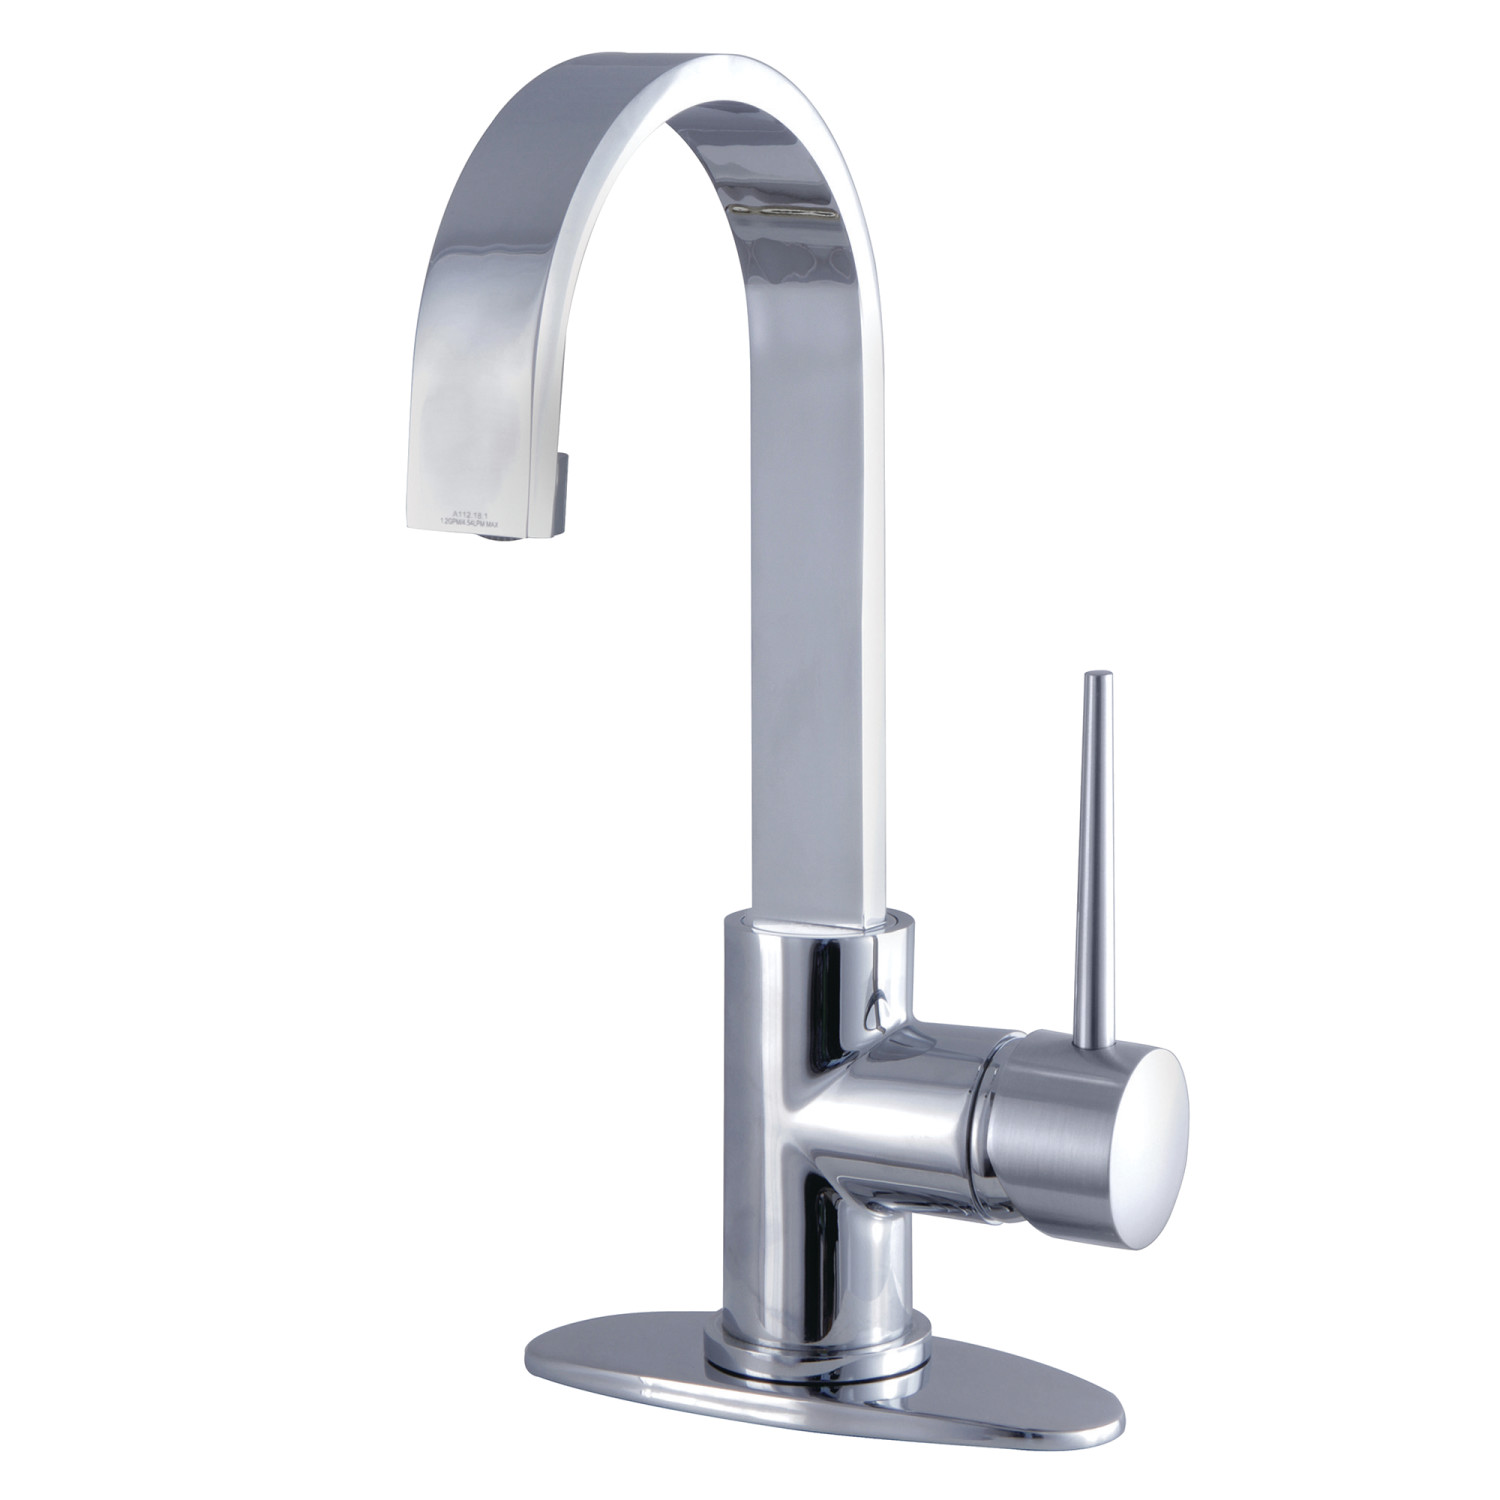 Single-Handle 1-Hole Deck Mounted Bathroom Faucet with Push Pop-Up in Polished Chrome with 4 Finish Options